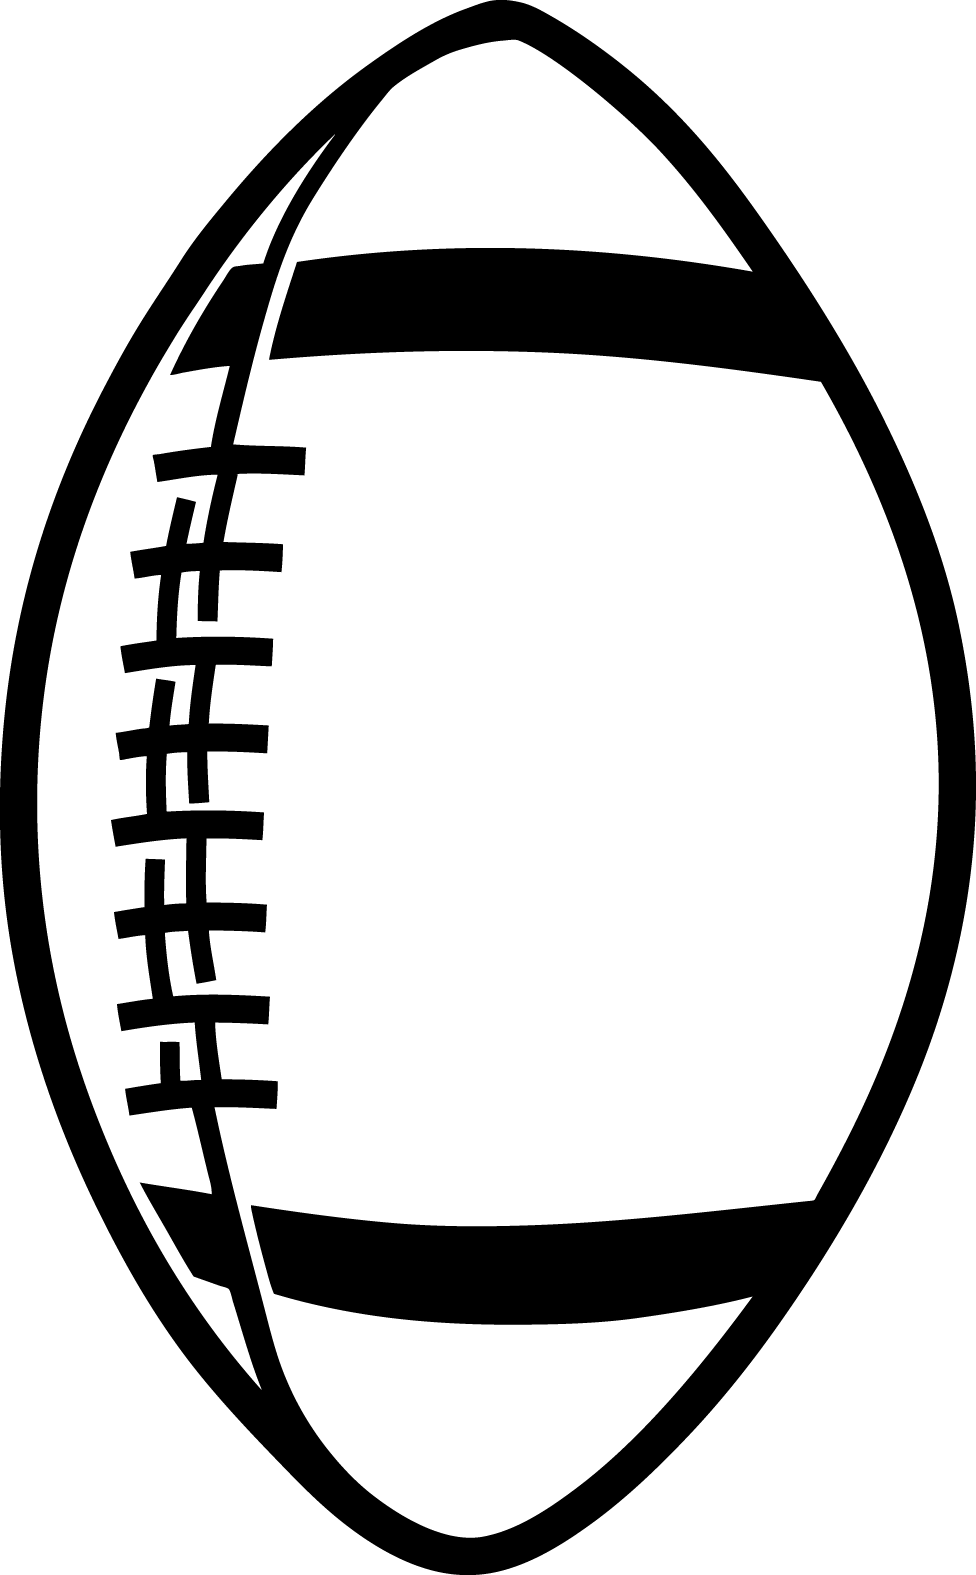 Football laces outline free clipart images 5